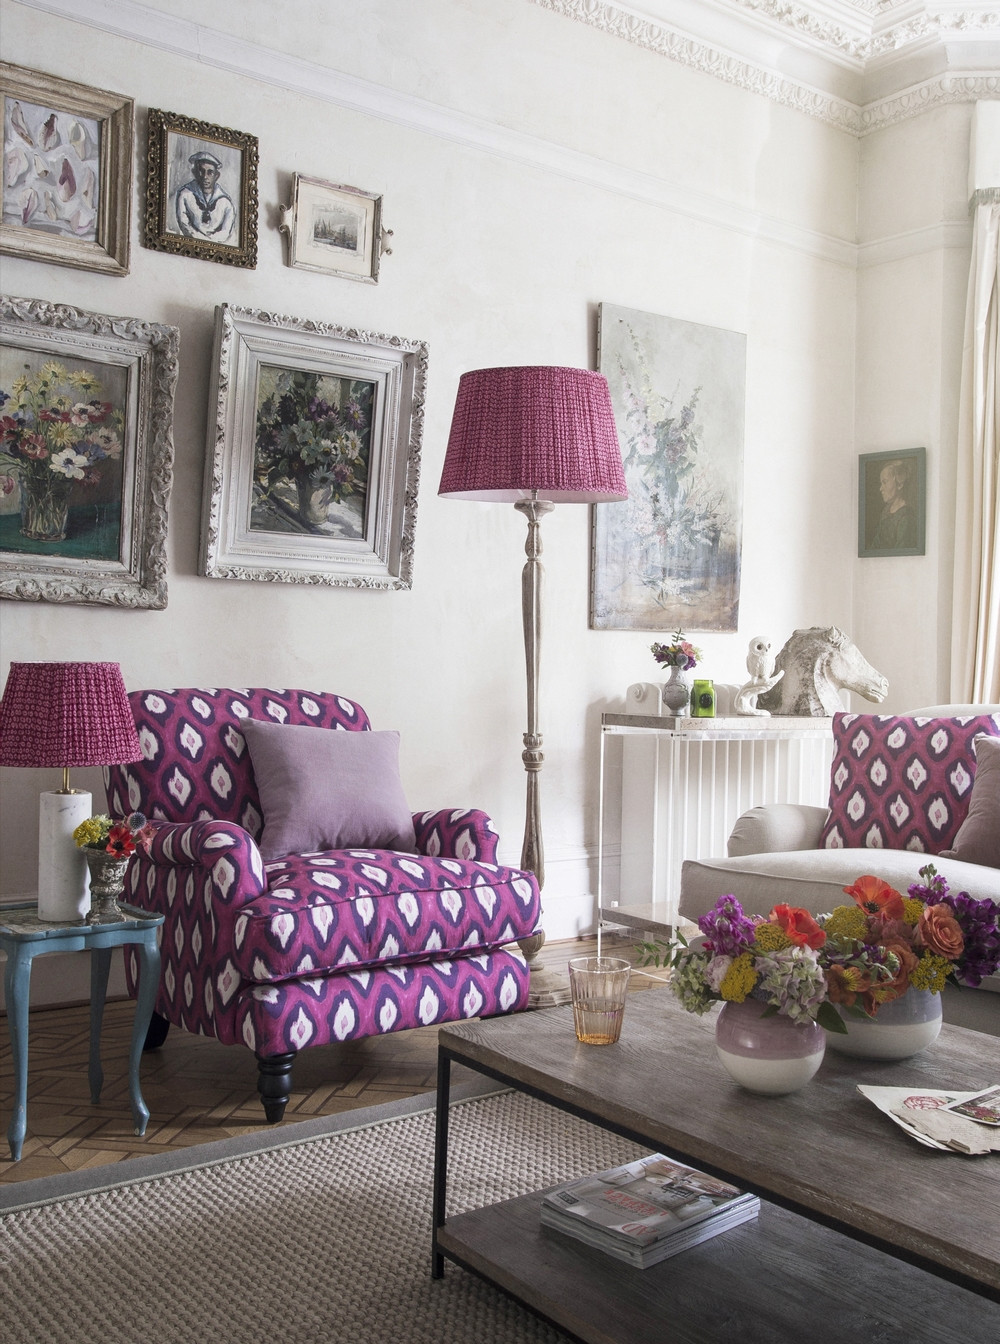 Snowdrop armchair (small) in Electric Ikat Magenta £1,000, large cushion £80 small cushion £70